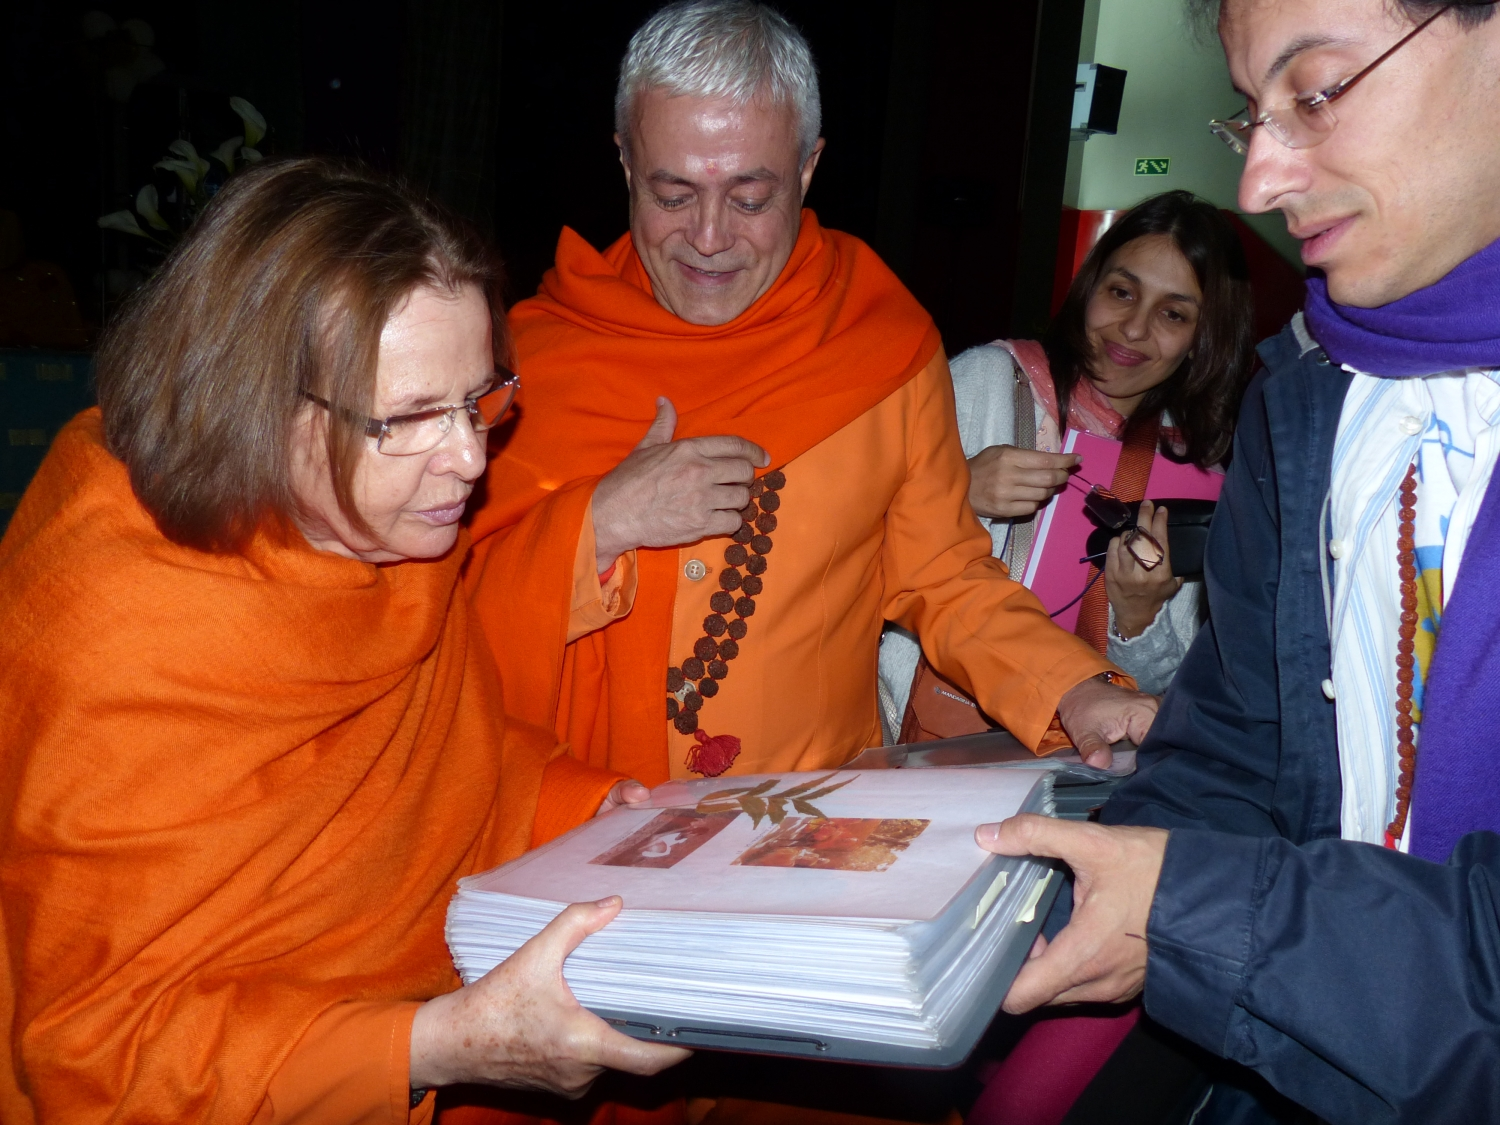 Meeting de H.H. Jagat Guru Amrta Sūryānanda Mahā Rāja with Swami Durgánanda, Director of the Shivánanda Centres in Europe